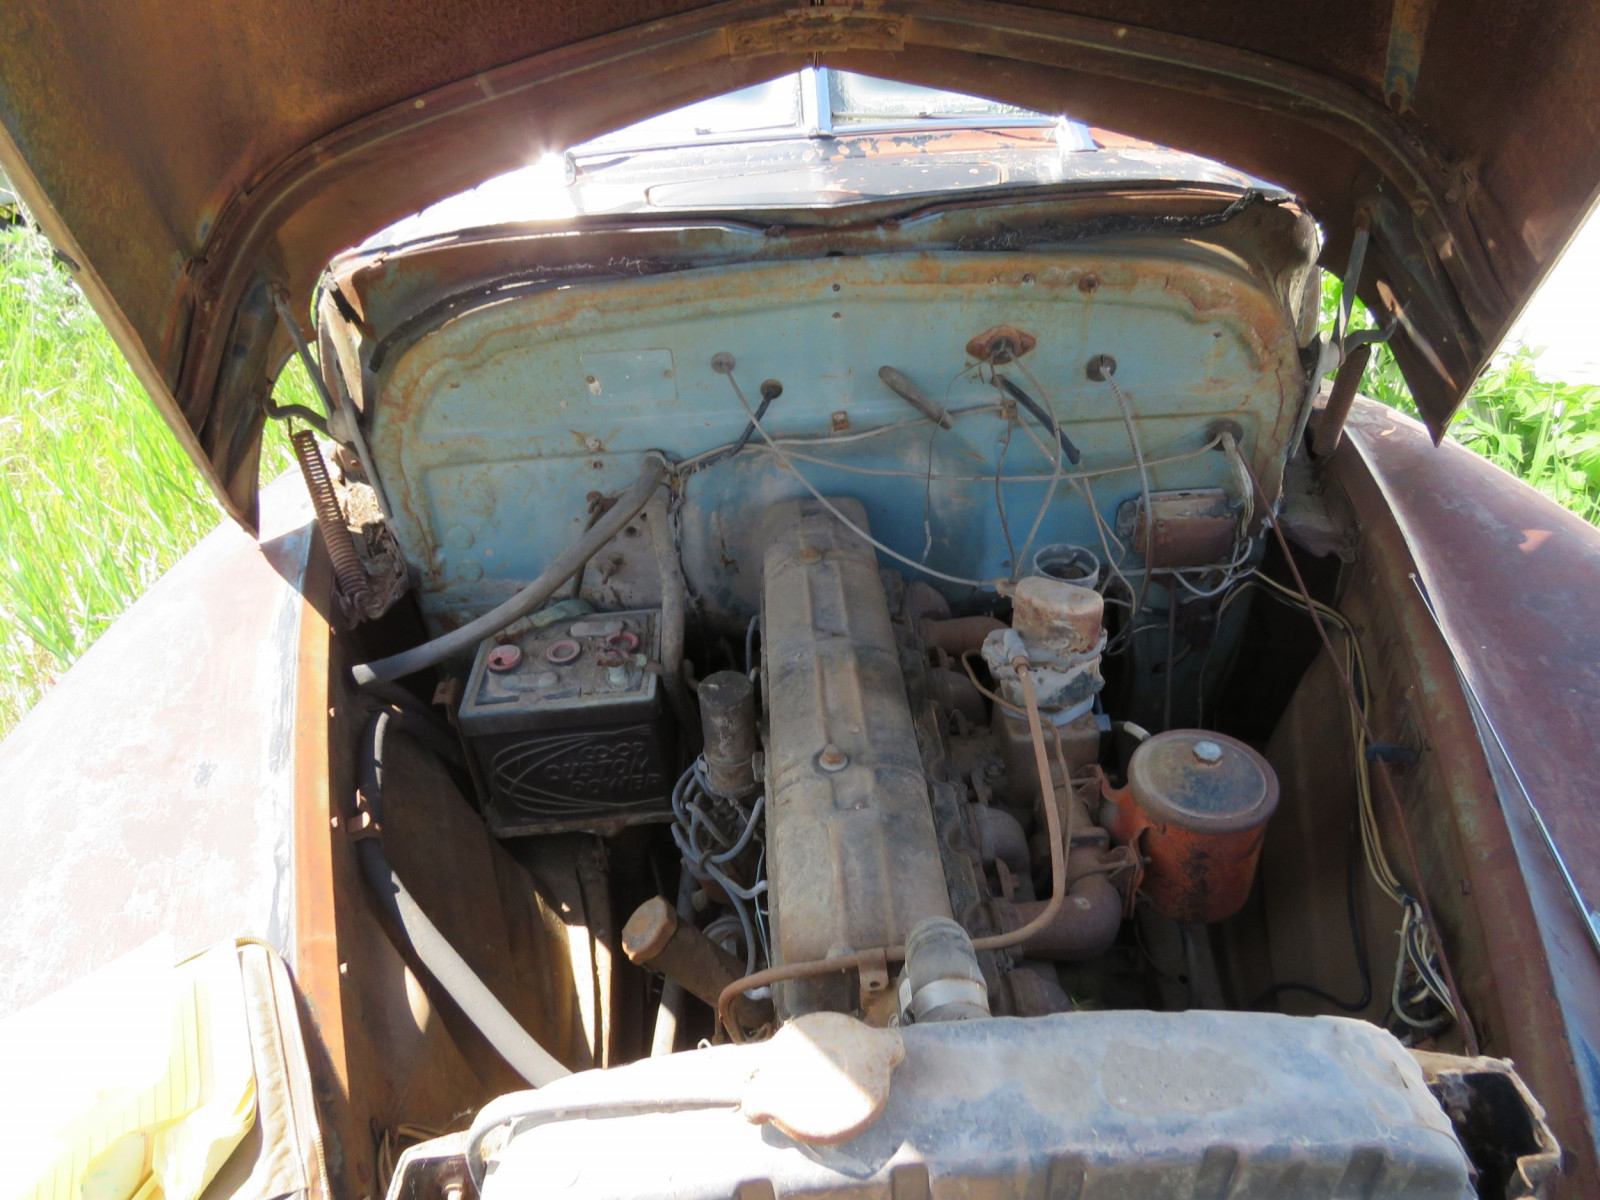 1947 Chevrolet Fleet master 4dr Sedan for Project or parts - Image 3